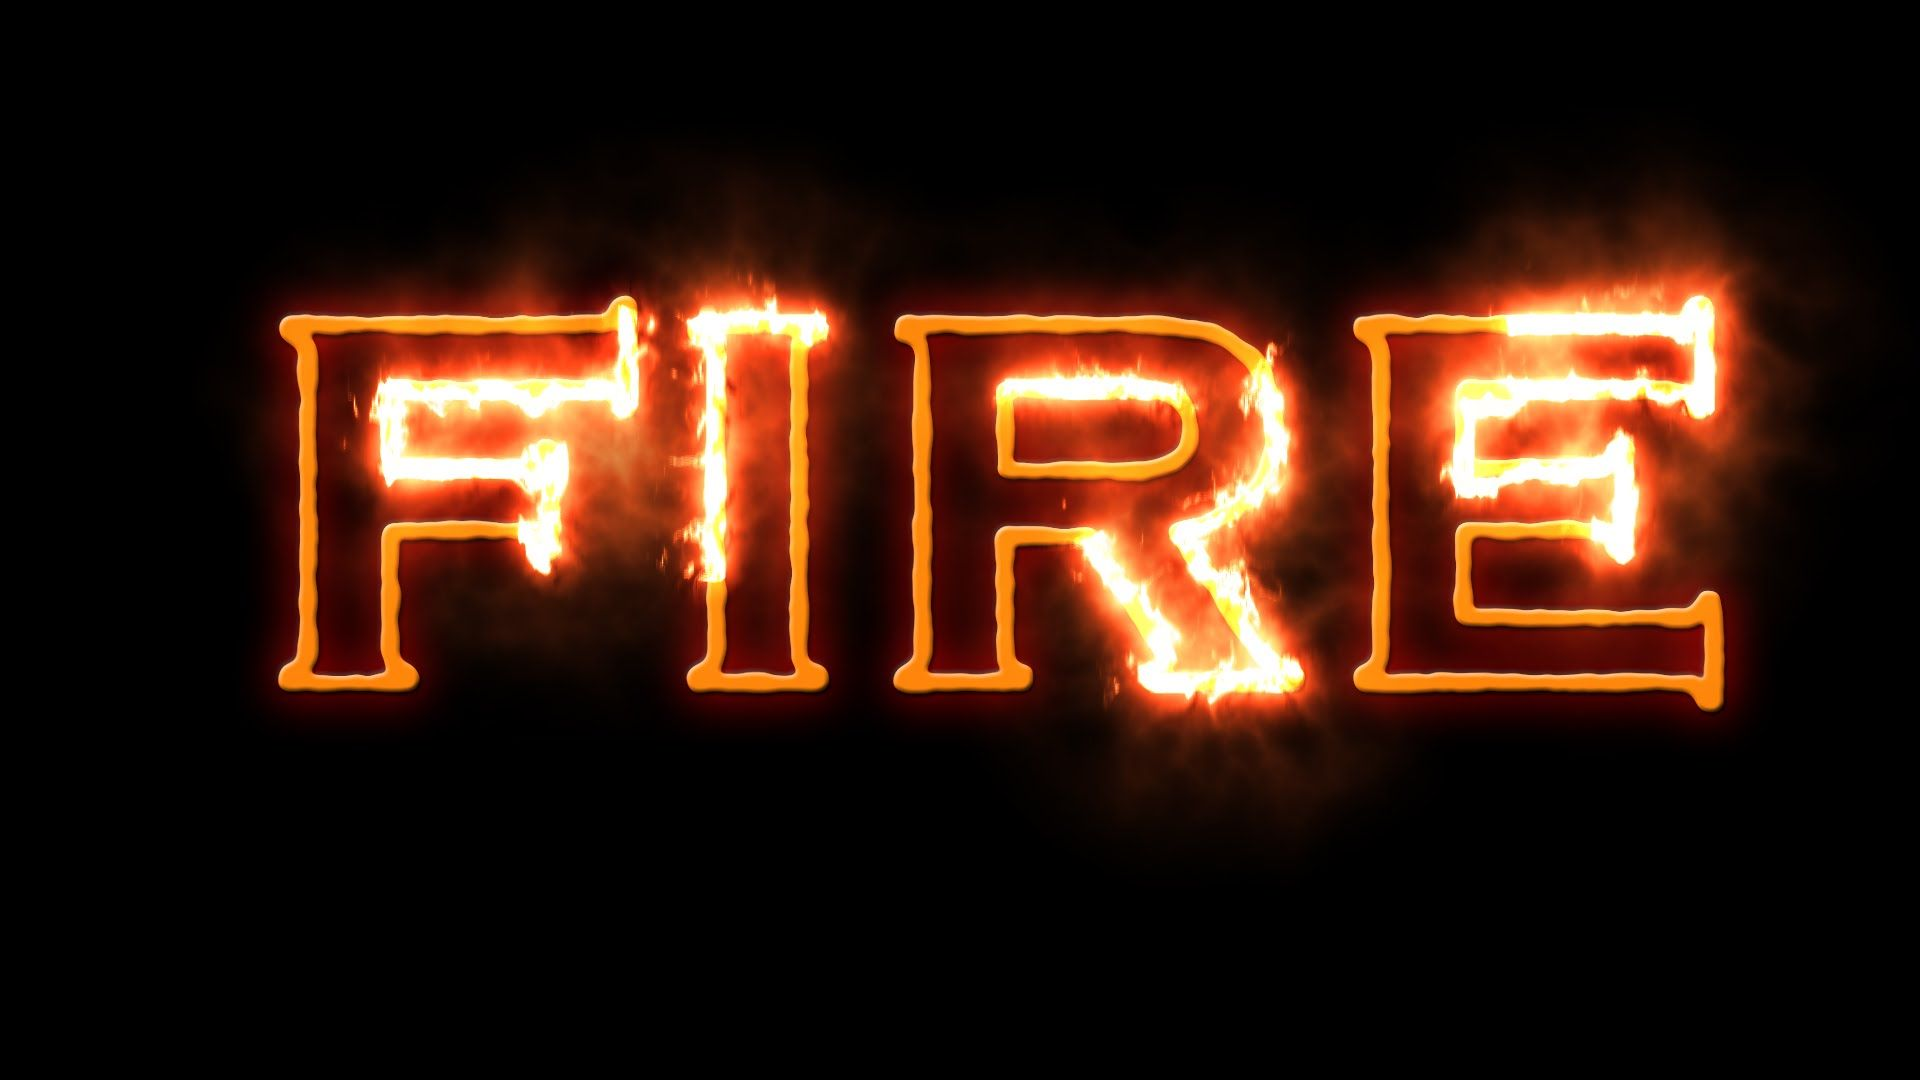 After Effect Tutorial Fire Text Effect With Saber Template Ae Http Www Mediafire Com File A28mlu6zv4auu6 After Effect Tutorial After Effects Text Effects Fire text after effects template